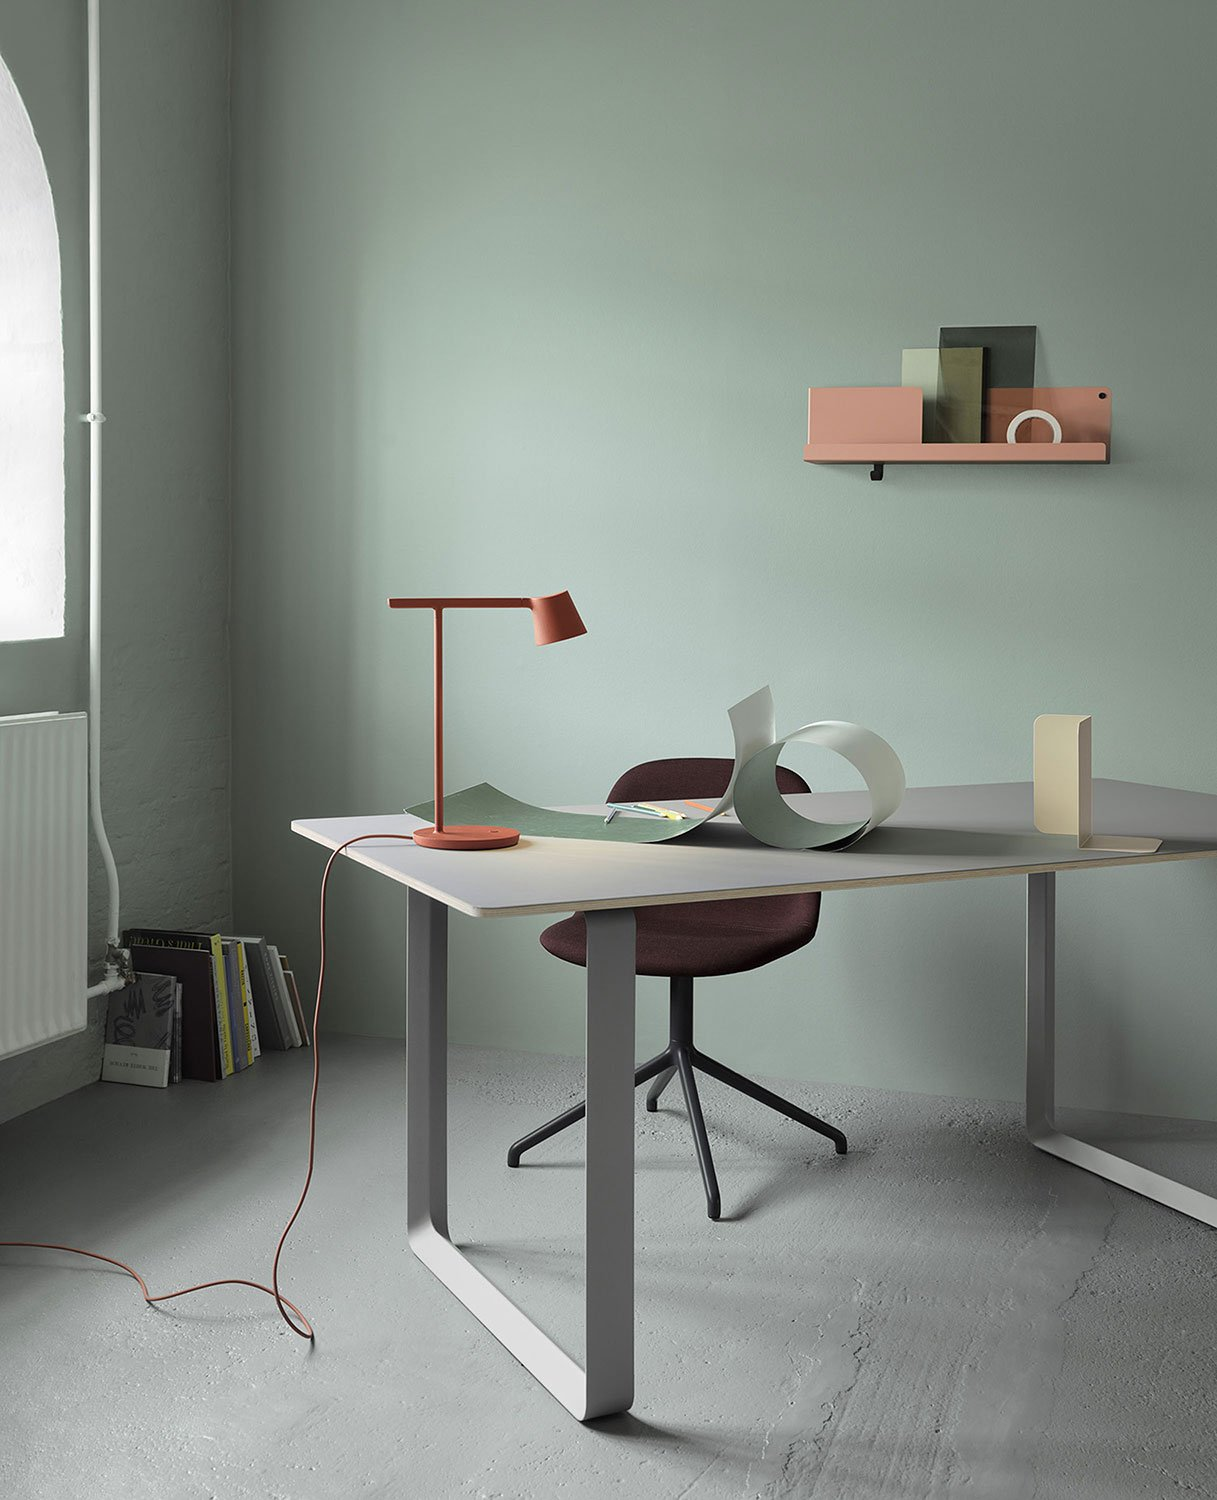 Muuto Tip Table Lamp with 7070 Table and Folded Shelves